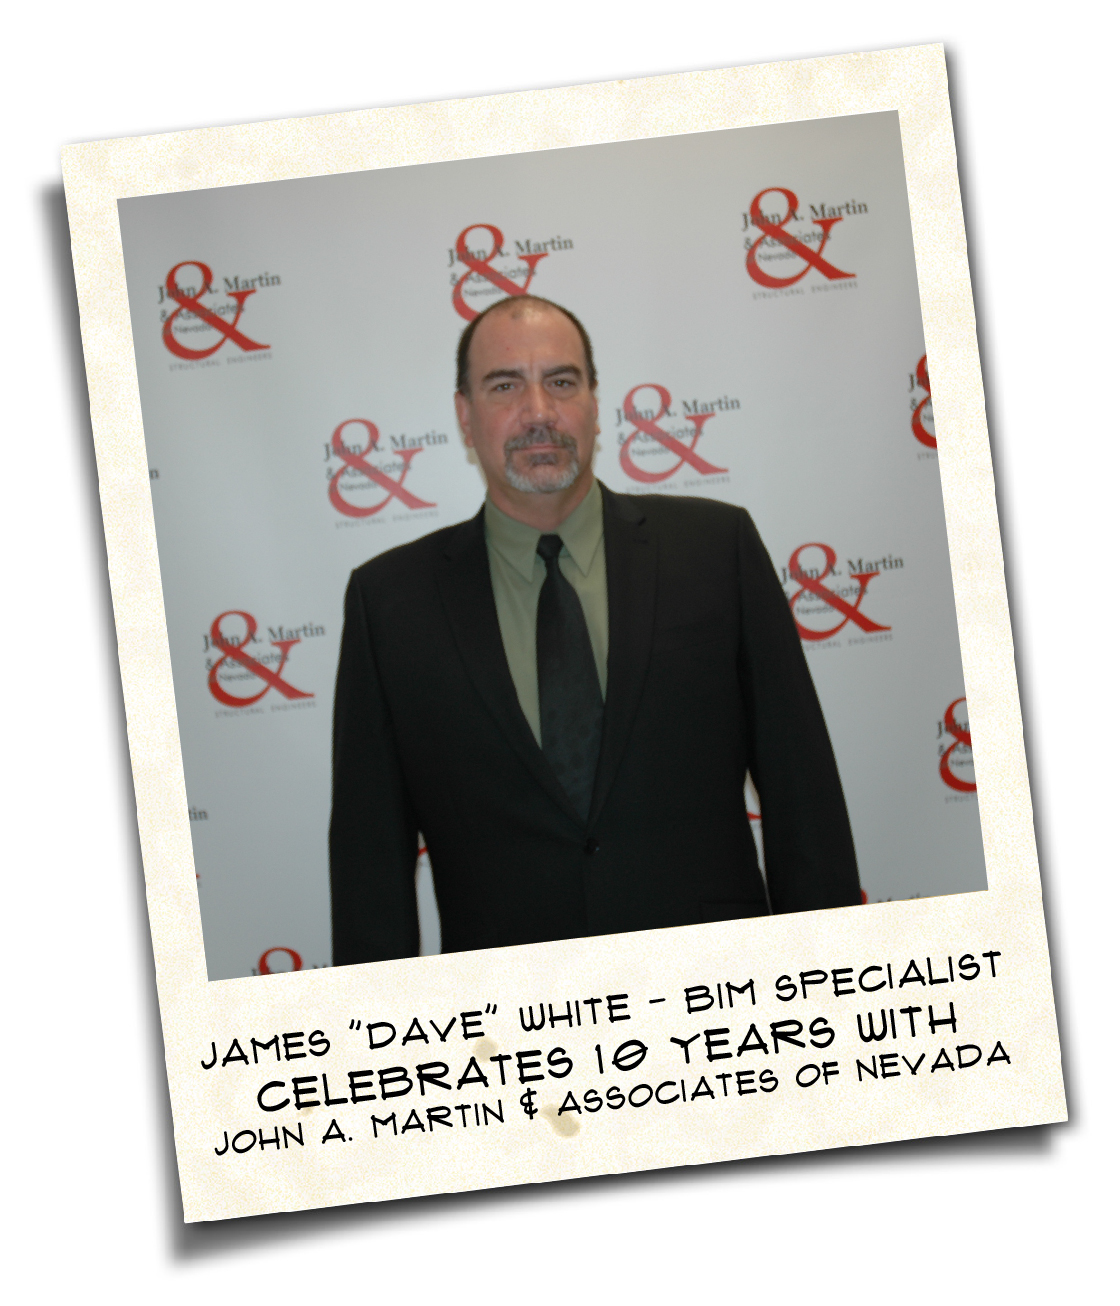 "James ""Dave"" White - BIM Specialist - 10 Year Anniversary"